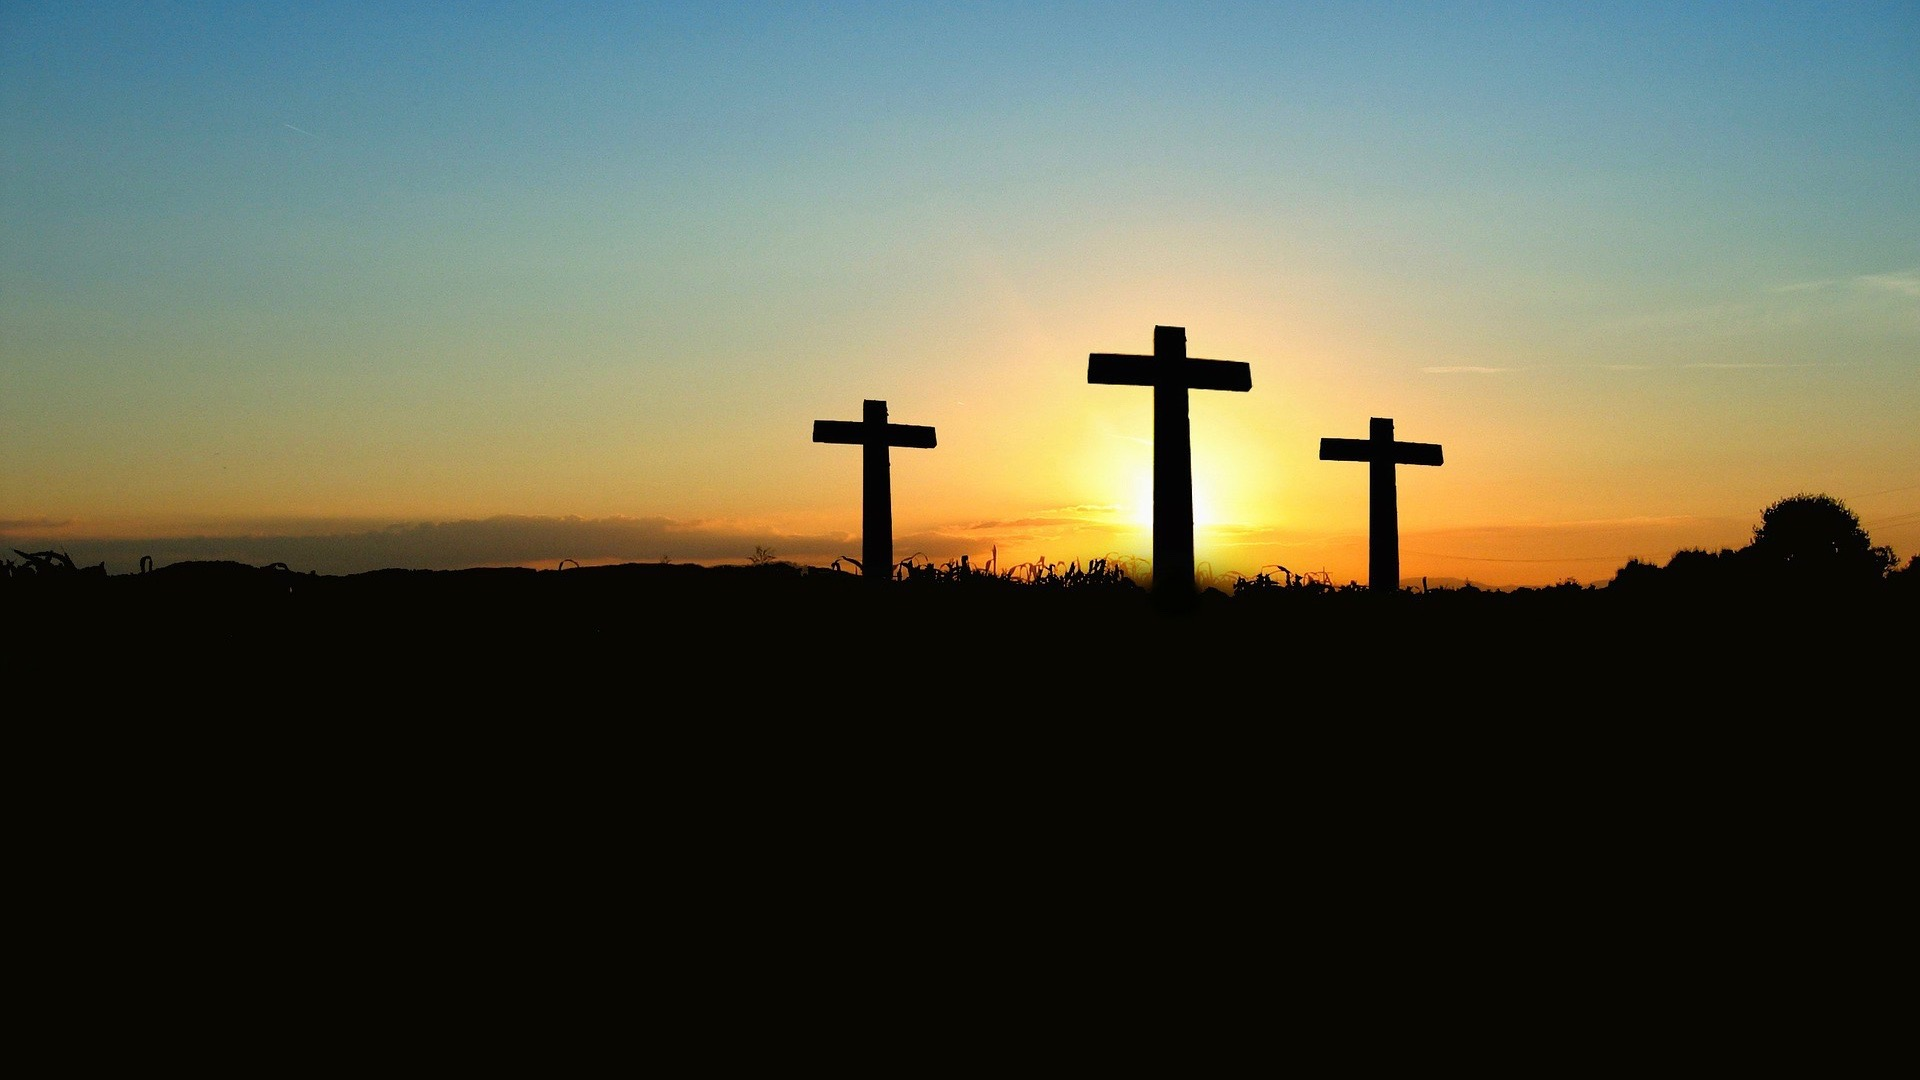 Three crosses in silhouette in front of a yellow sunset.